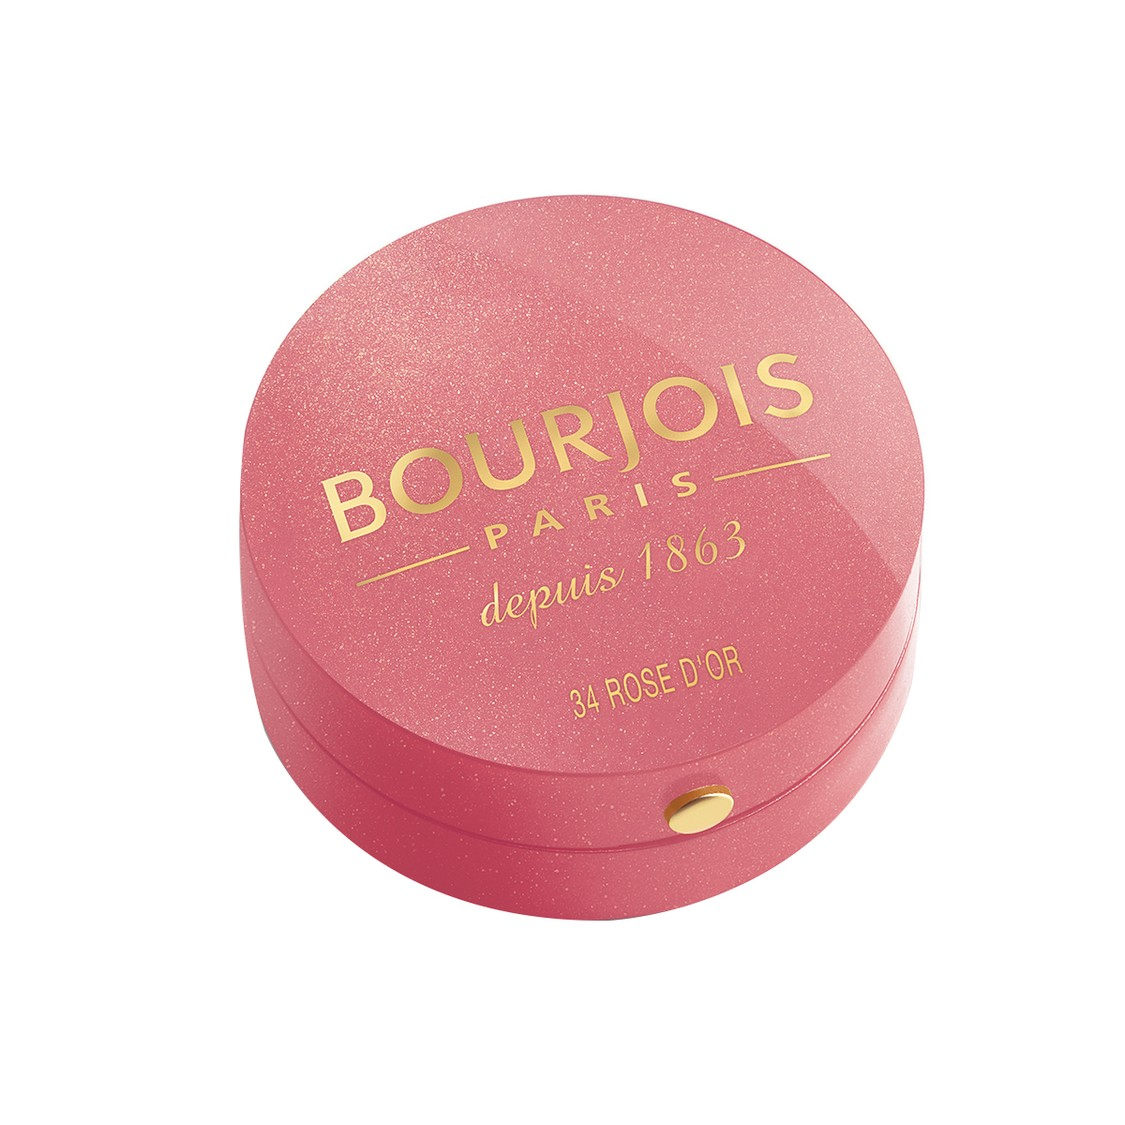 Bourjois Little Round Pot Blusher